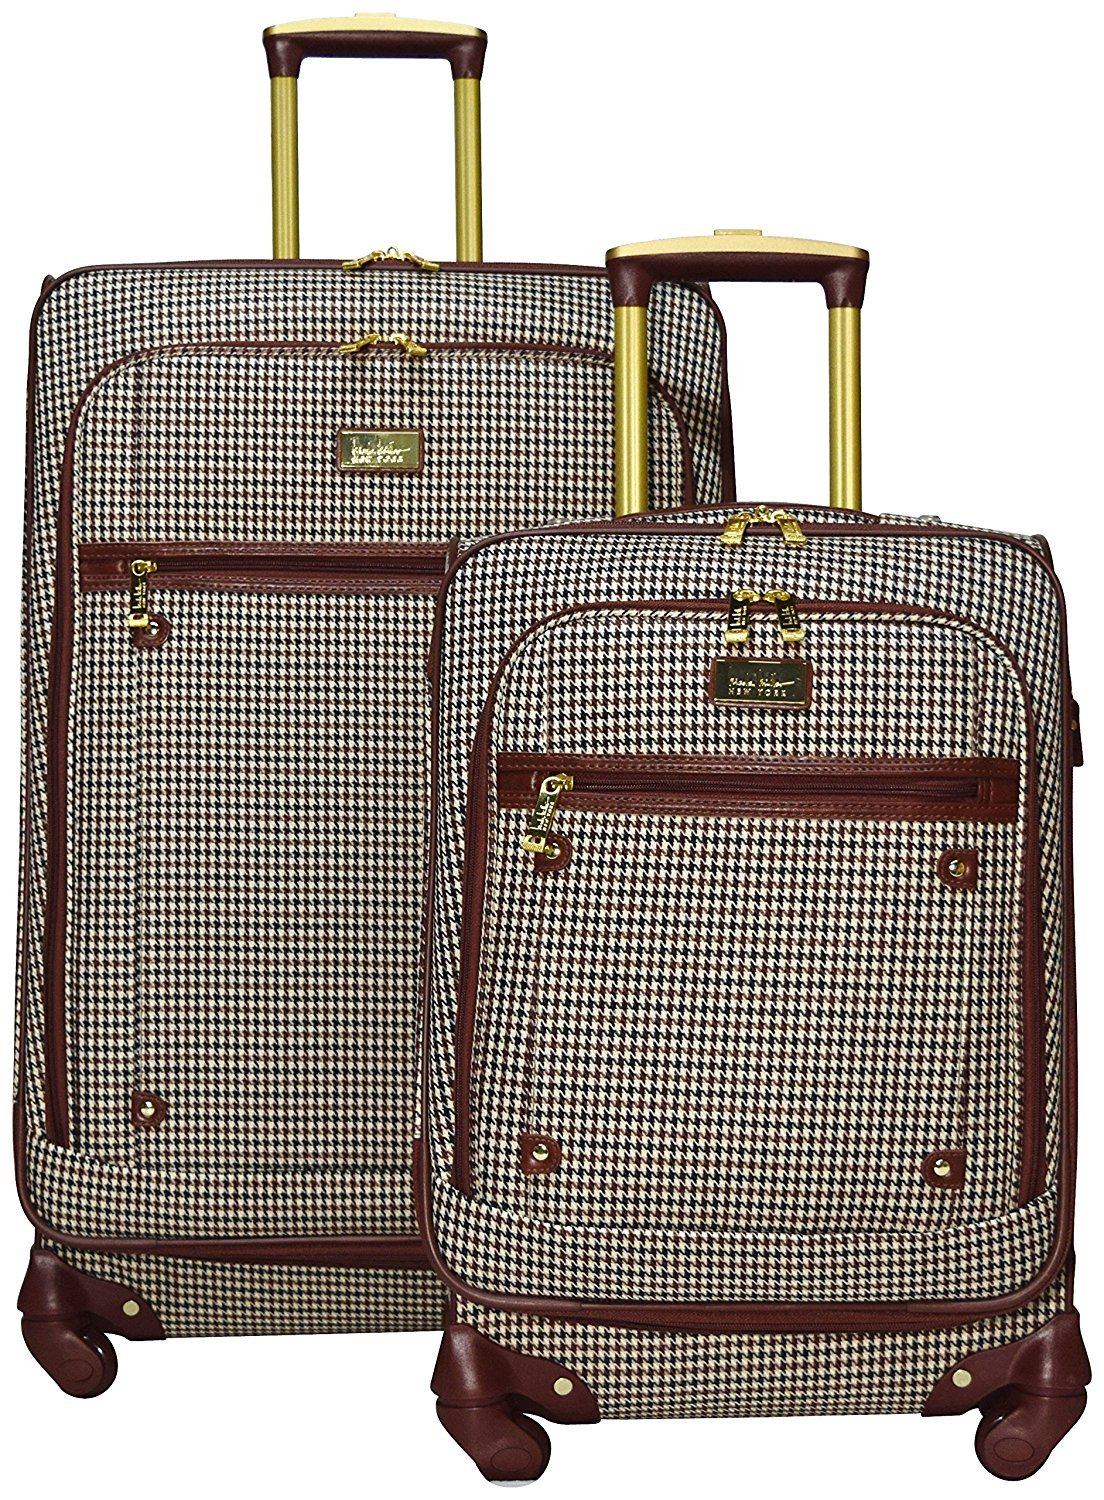 Nicole Miller New York Taylor 2-Piece Luggage Set: 24'' and 20'' Spinners (Brown Plaid)